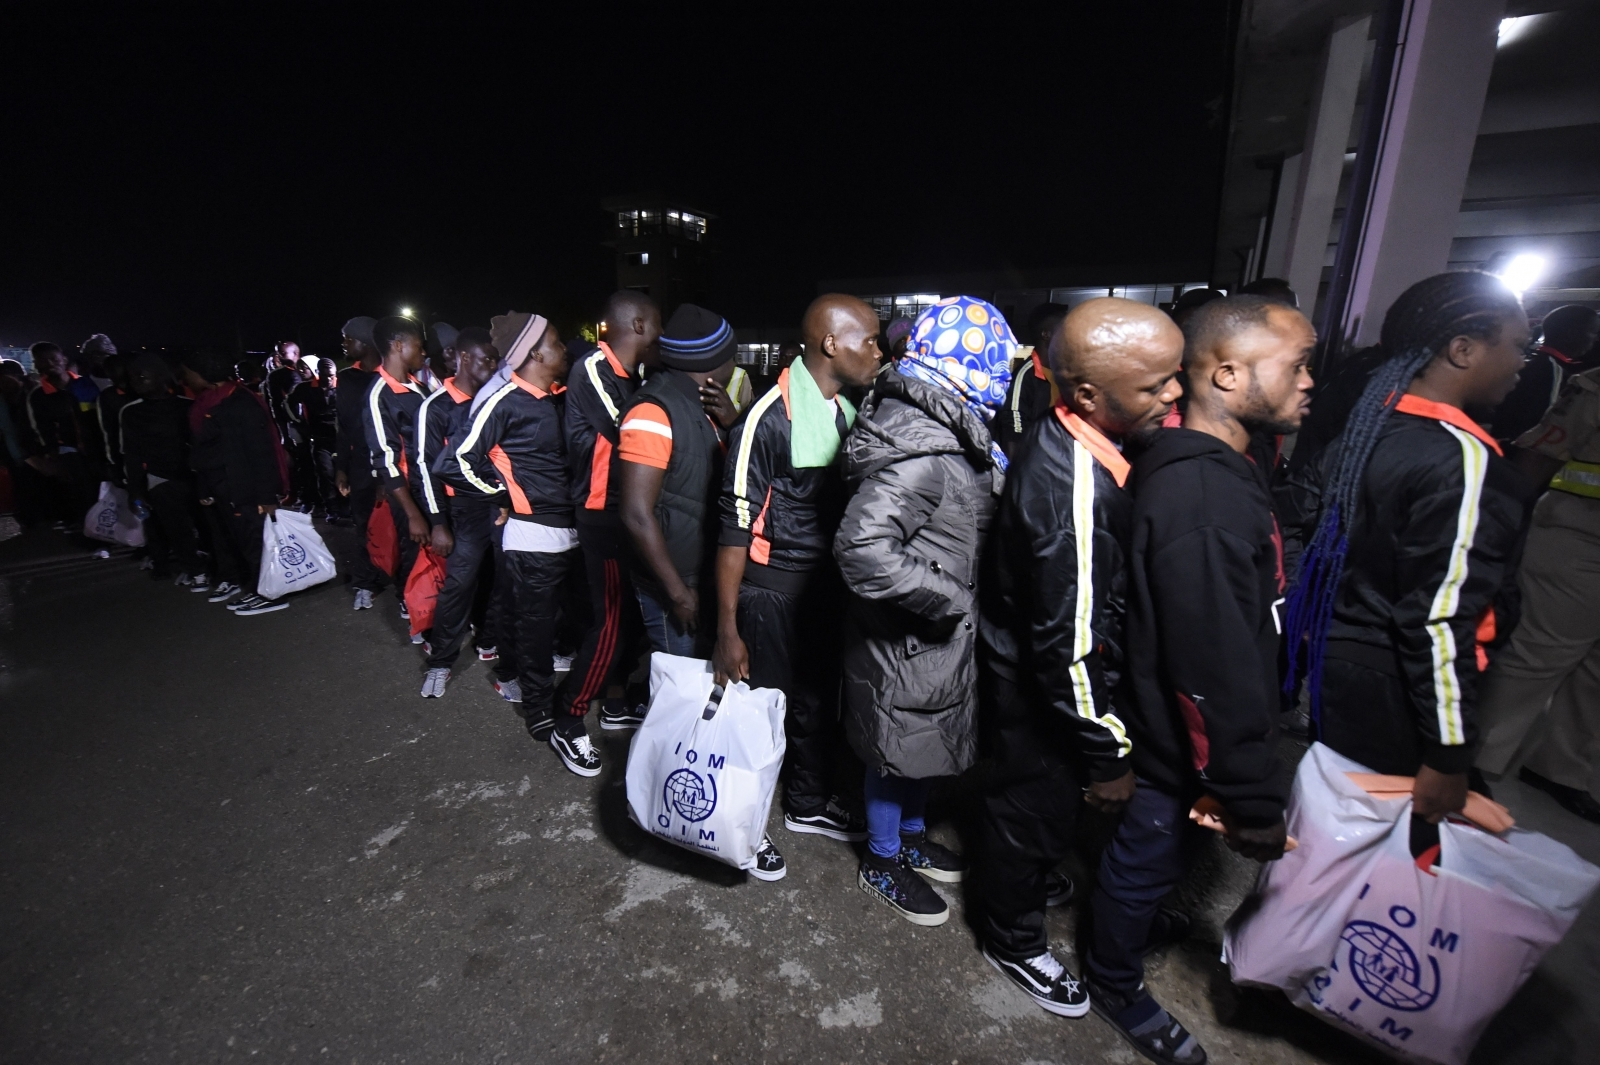 United Nations condemns 'heinous' sale of migrants in Libya as slaves